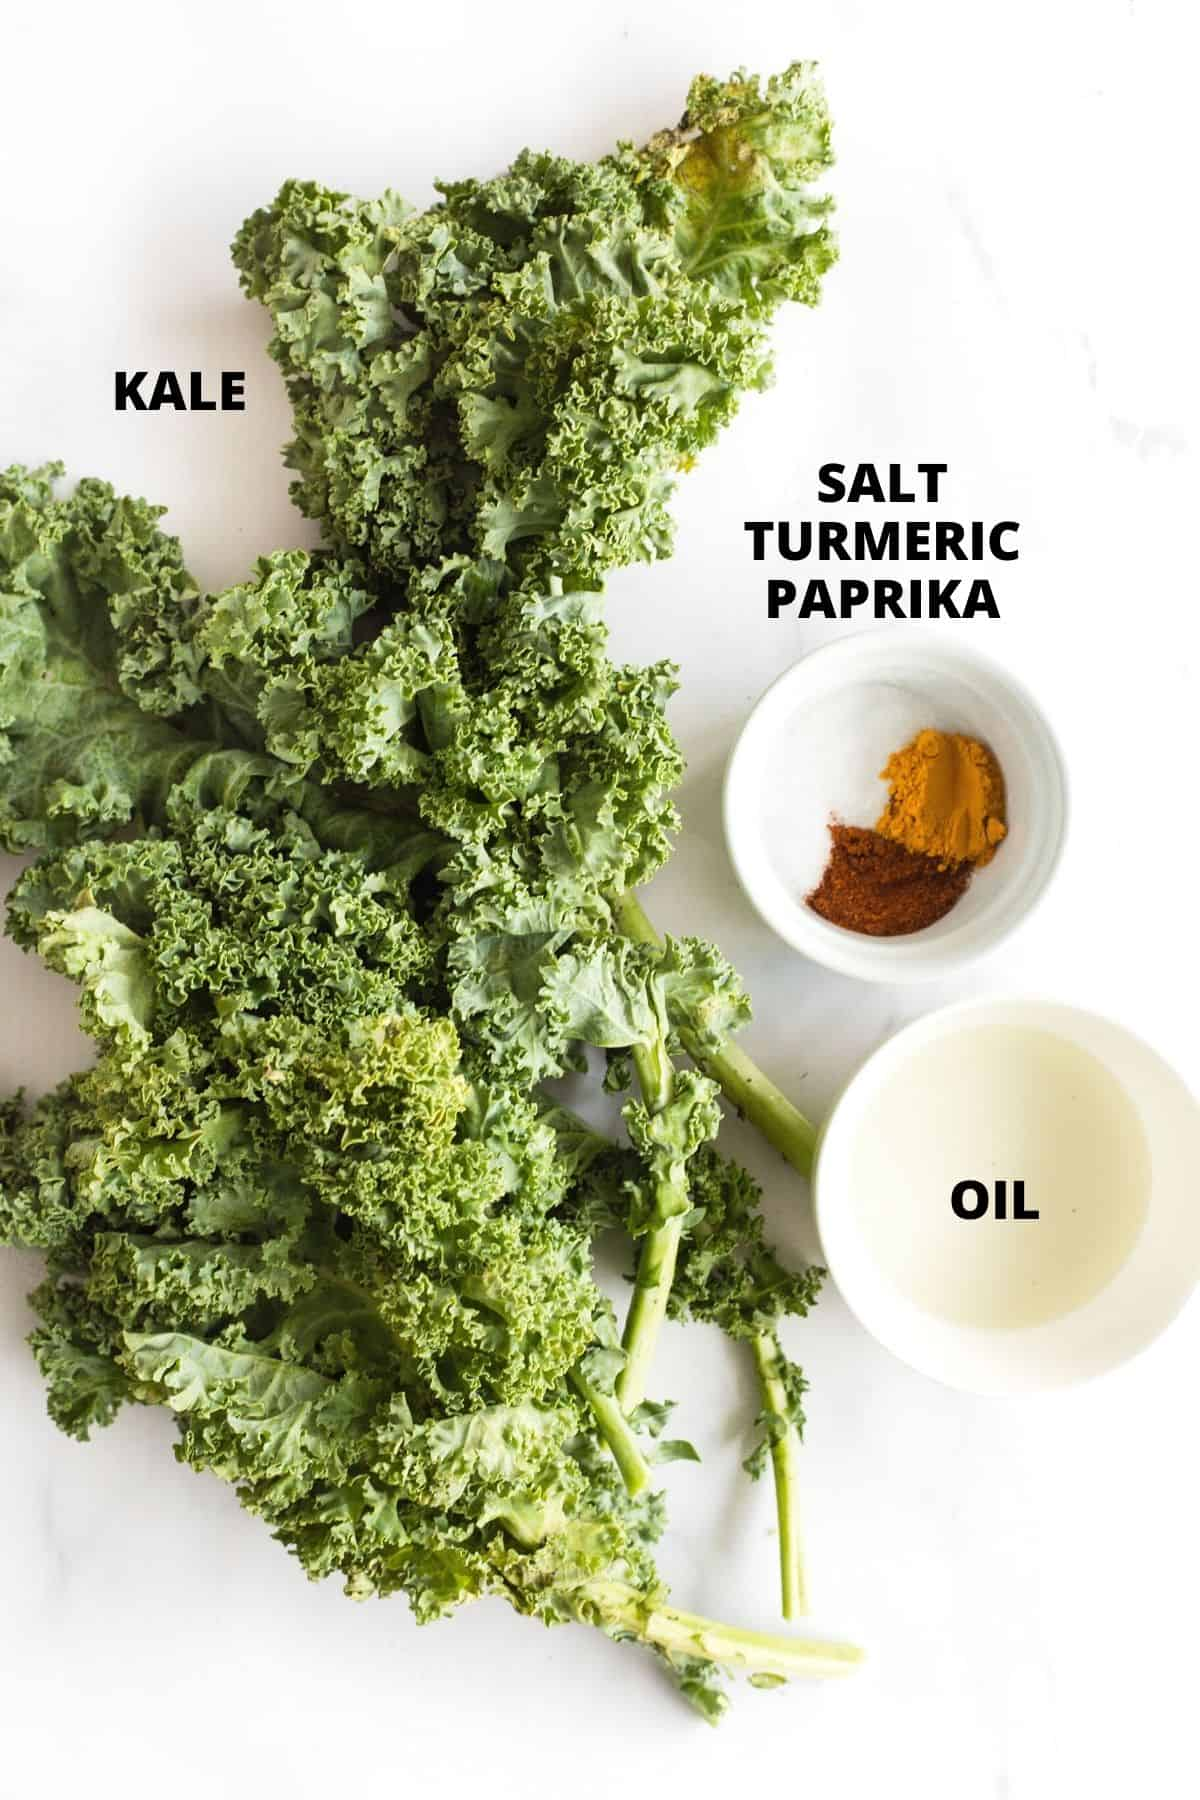 Labeled ingredients for air fryer kale chips recipe.